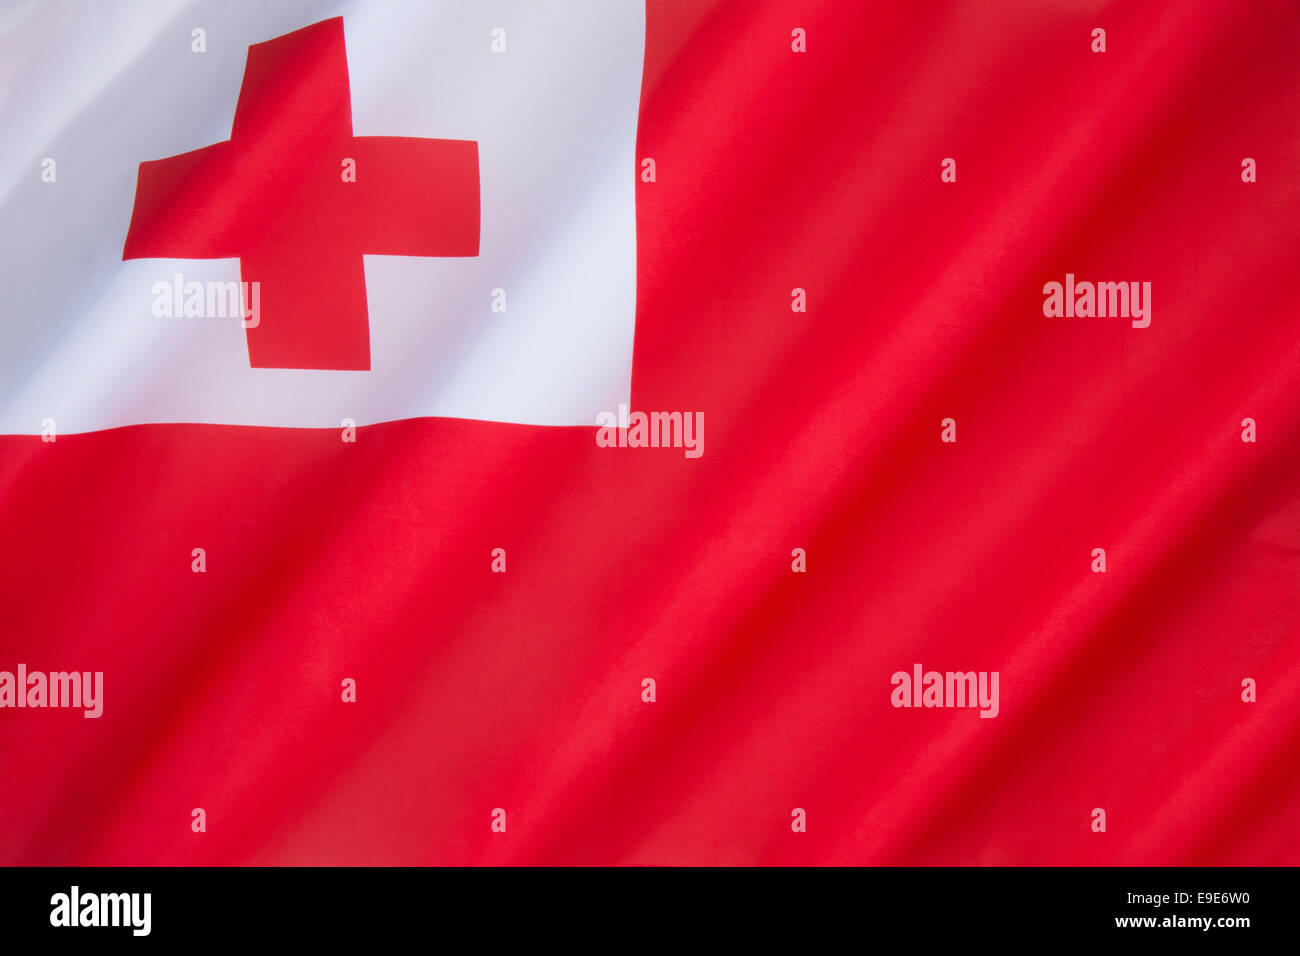 Flag of Tonga - Stock Image